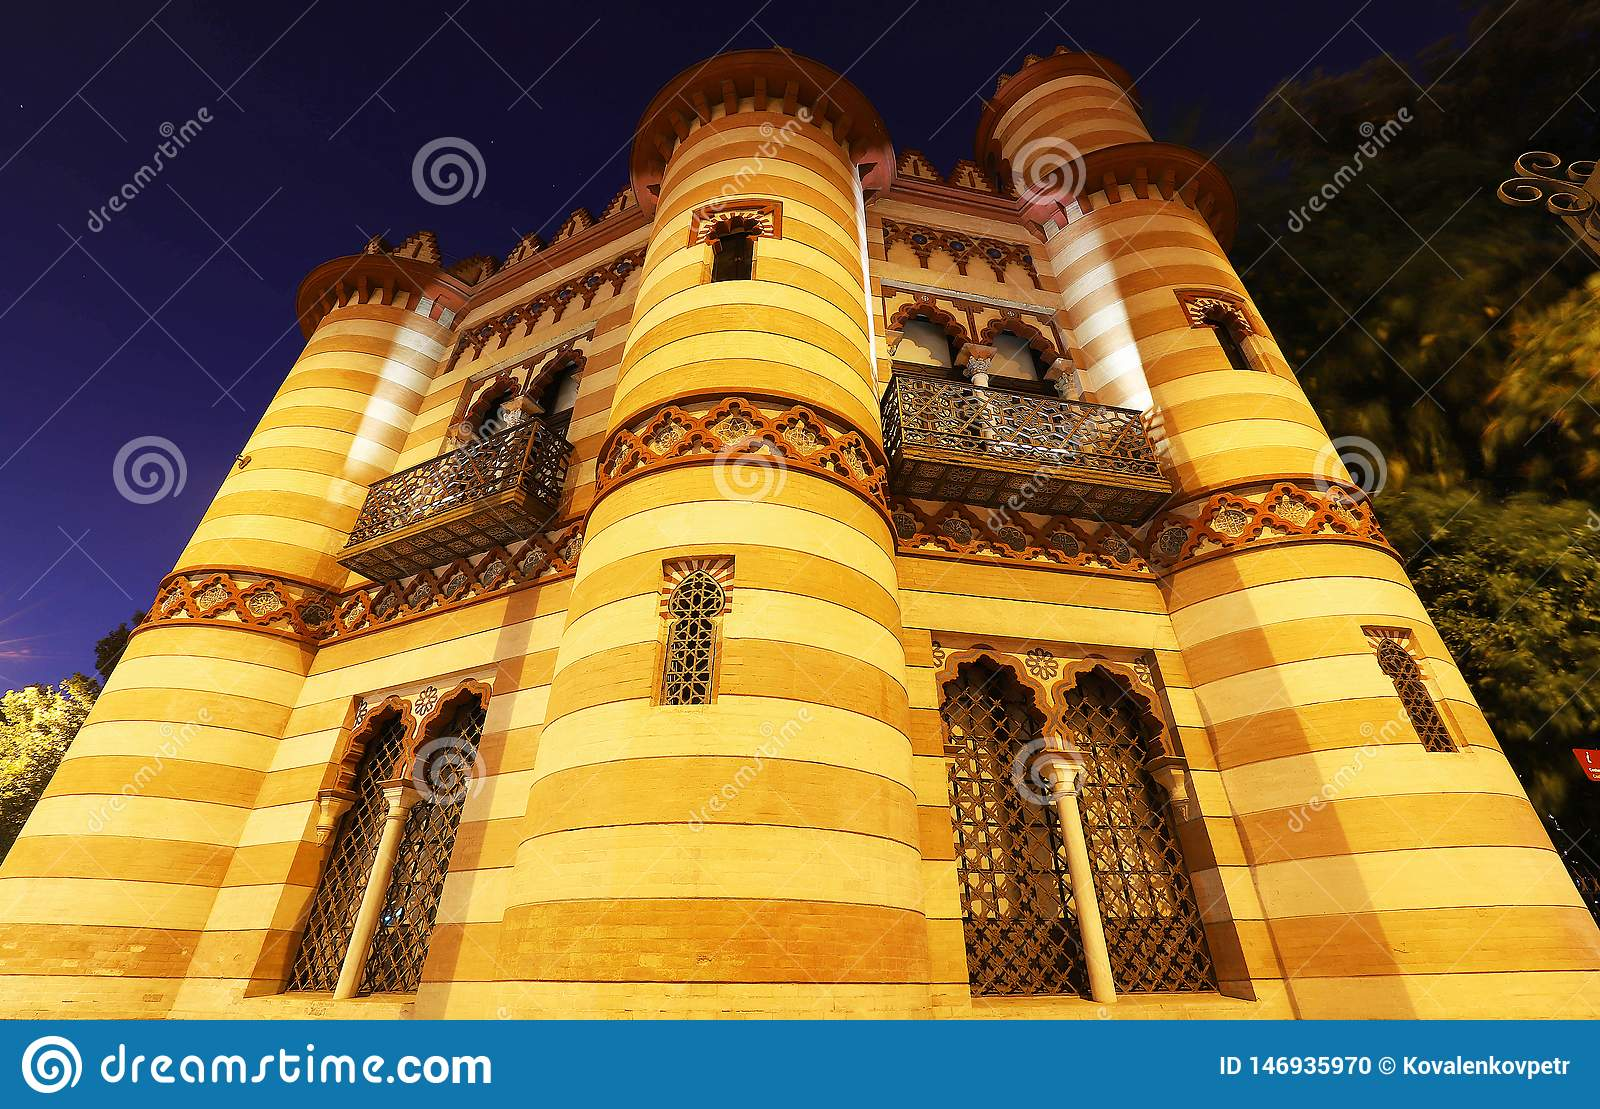 The Historical Building Of Tourisme Office In Seville Spain